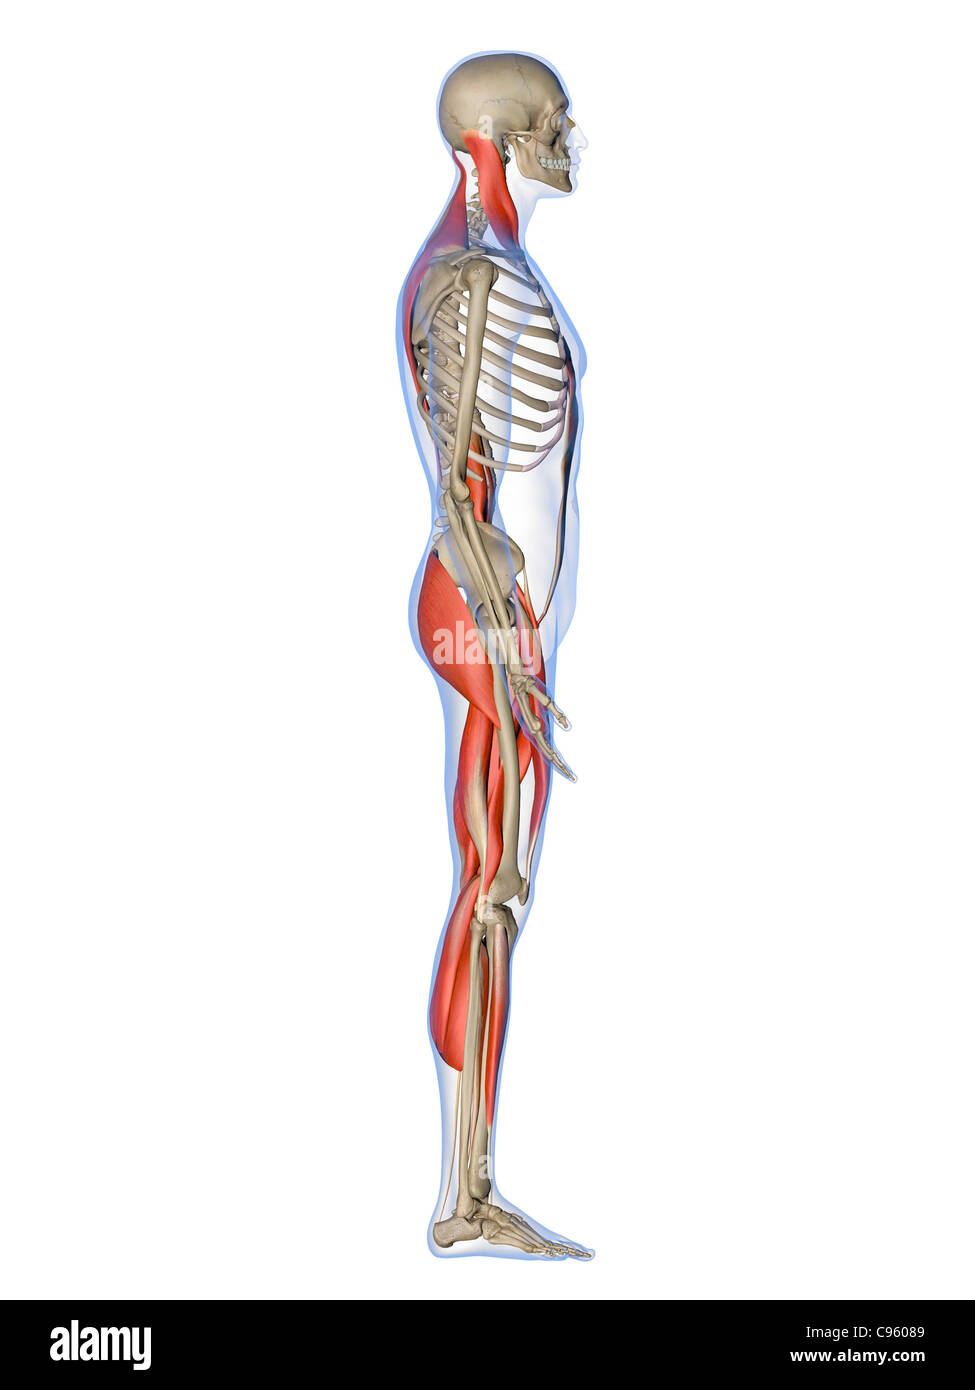 Male muscles, artwork - Stock Image